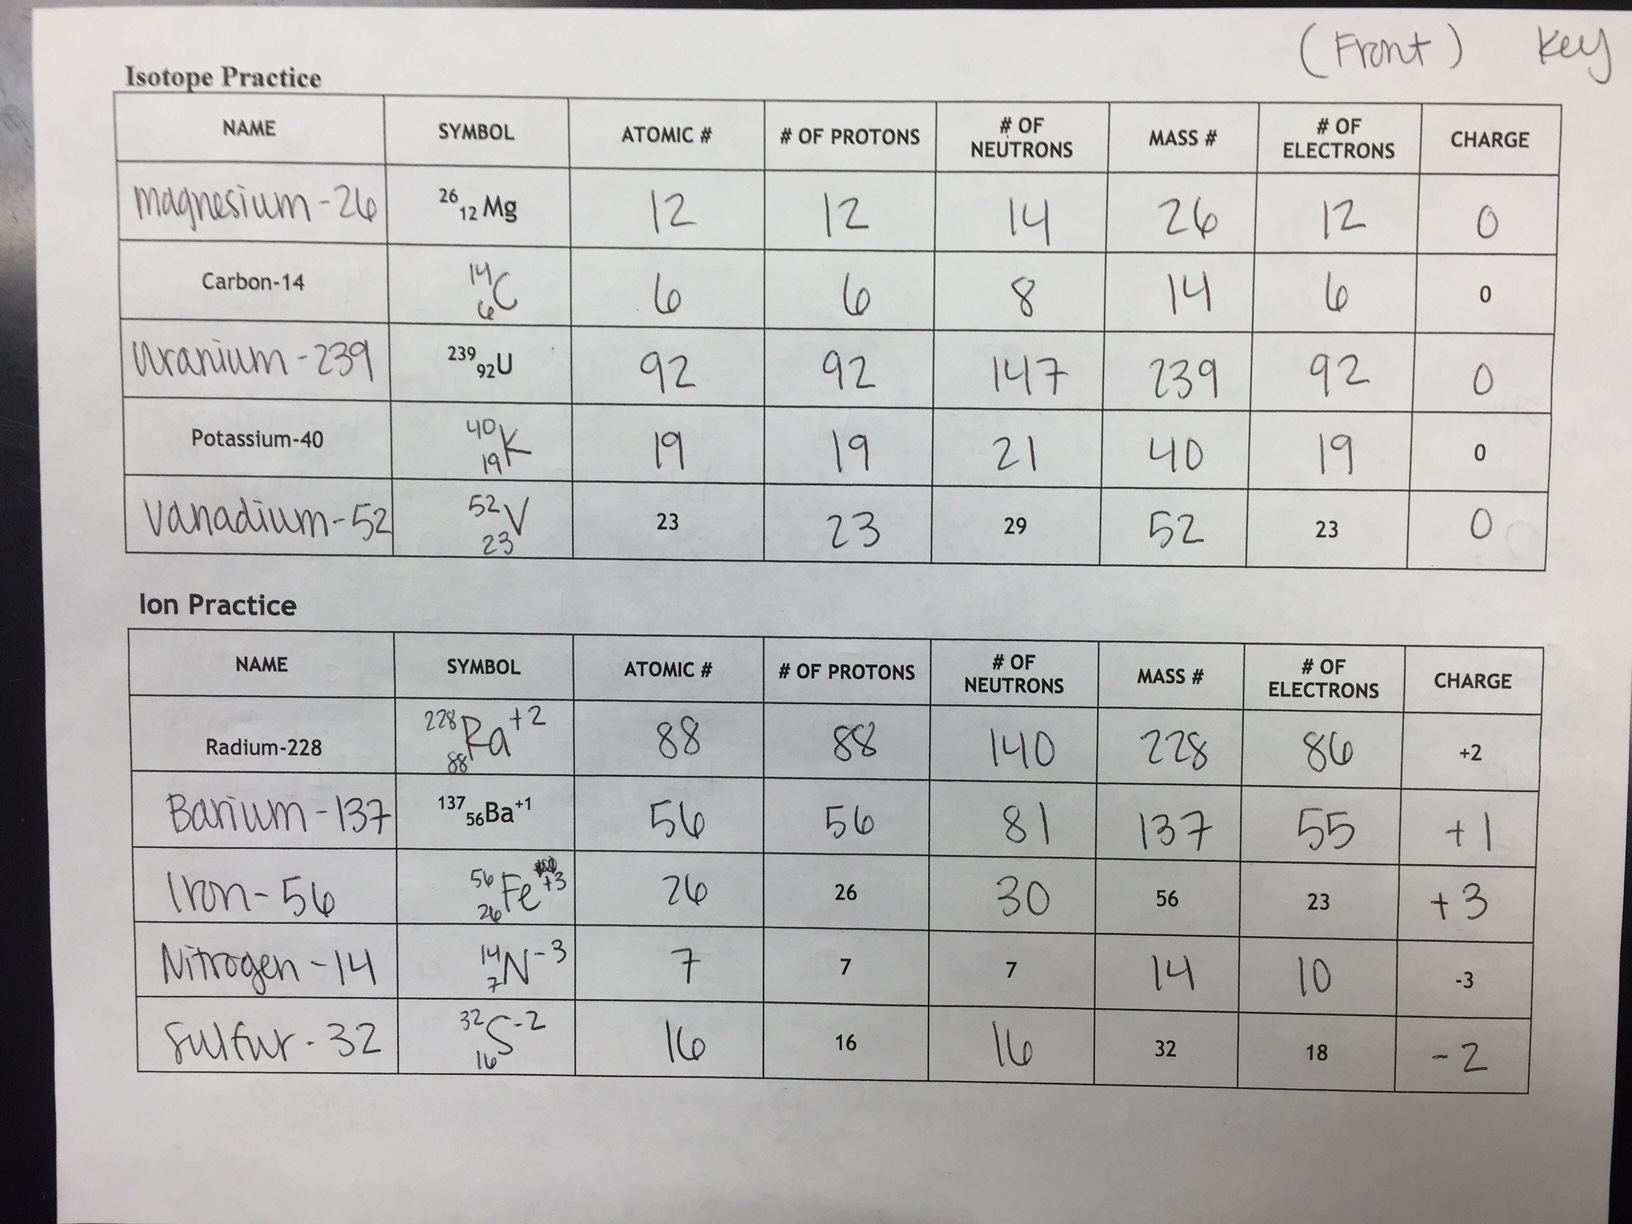 Free Worksheet Ions And Isotopes Worksheet unit 2 atomic structure ms holls physical science class isotope and ion practice answer key